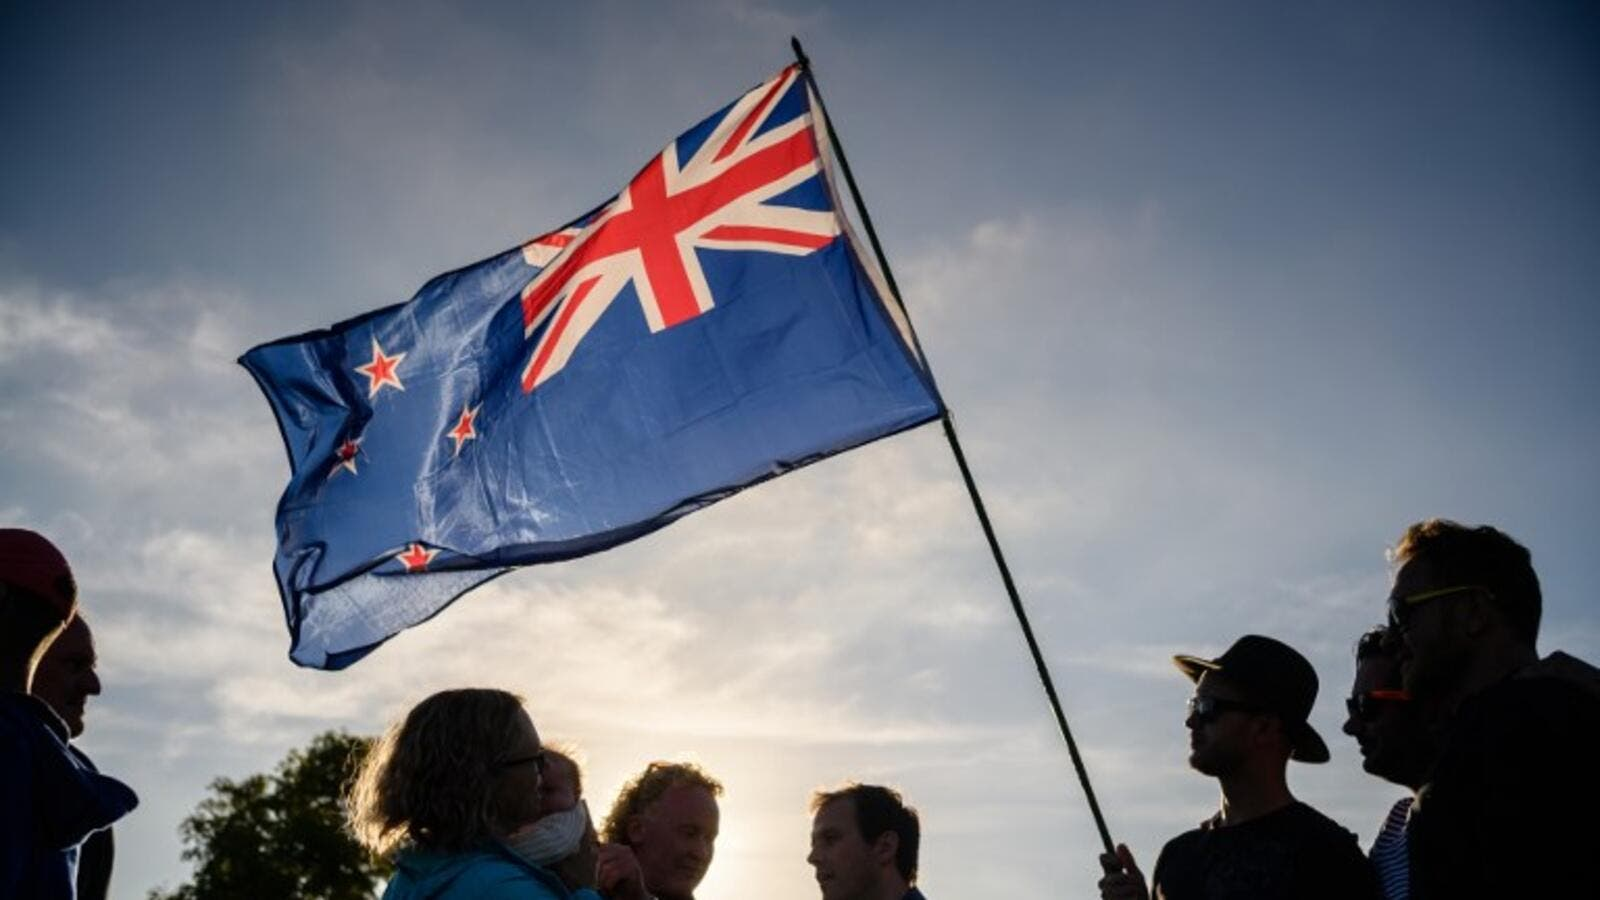 A man raises a New Zealand flag as he attends a vigil in memory of the twin mosque massacre victims in Christchurch (AFP)